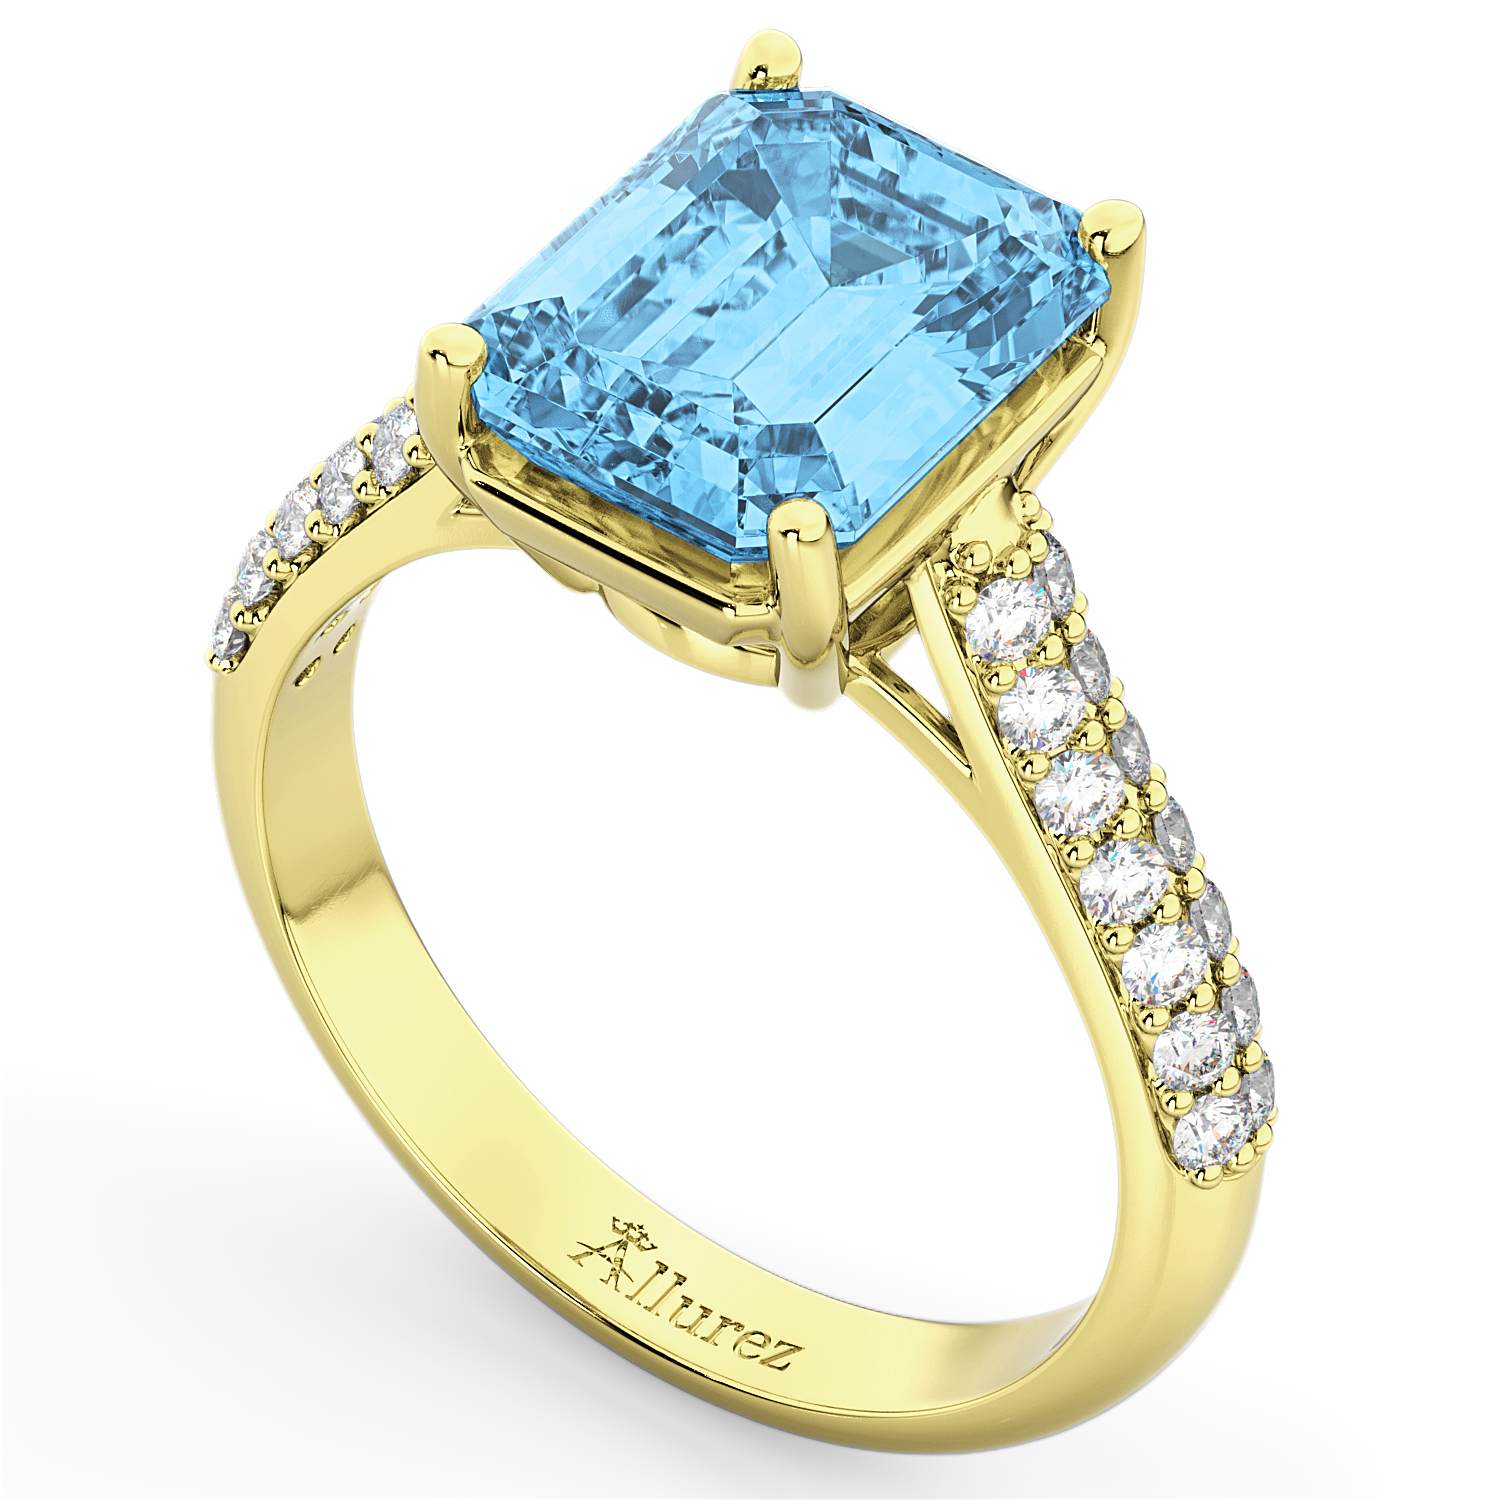 emerald cut blue topaz ring 18k yellow gold 5